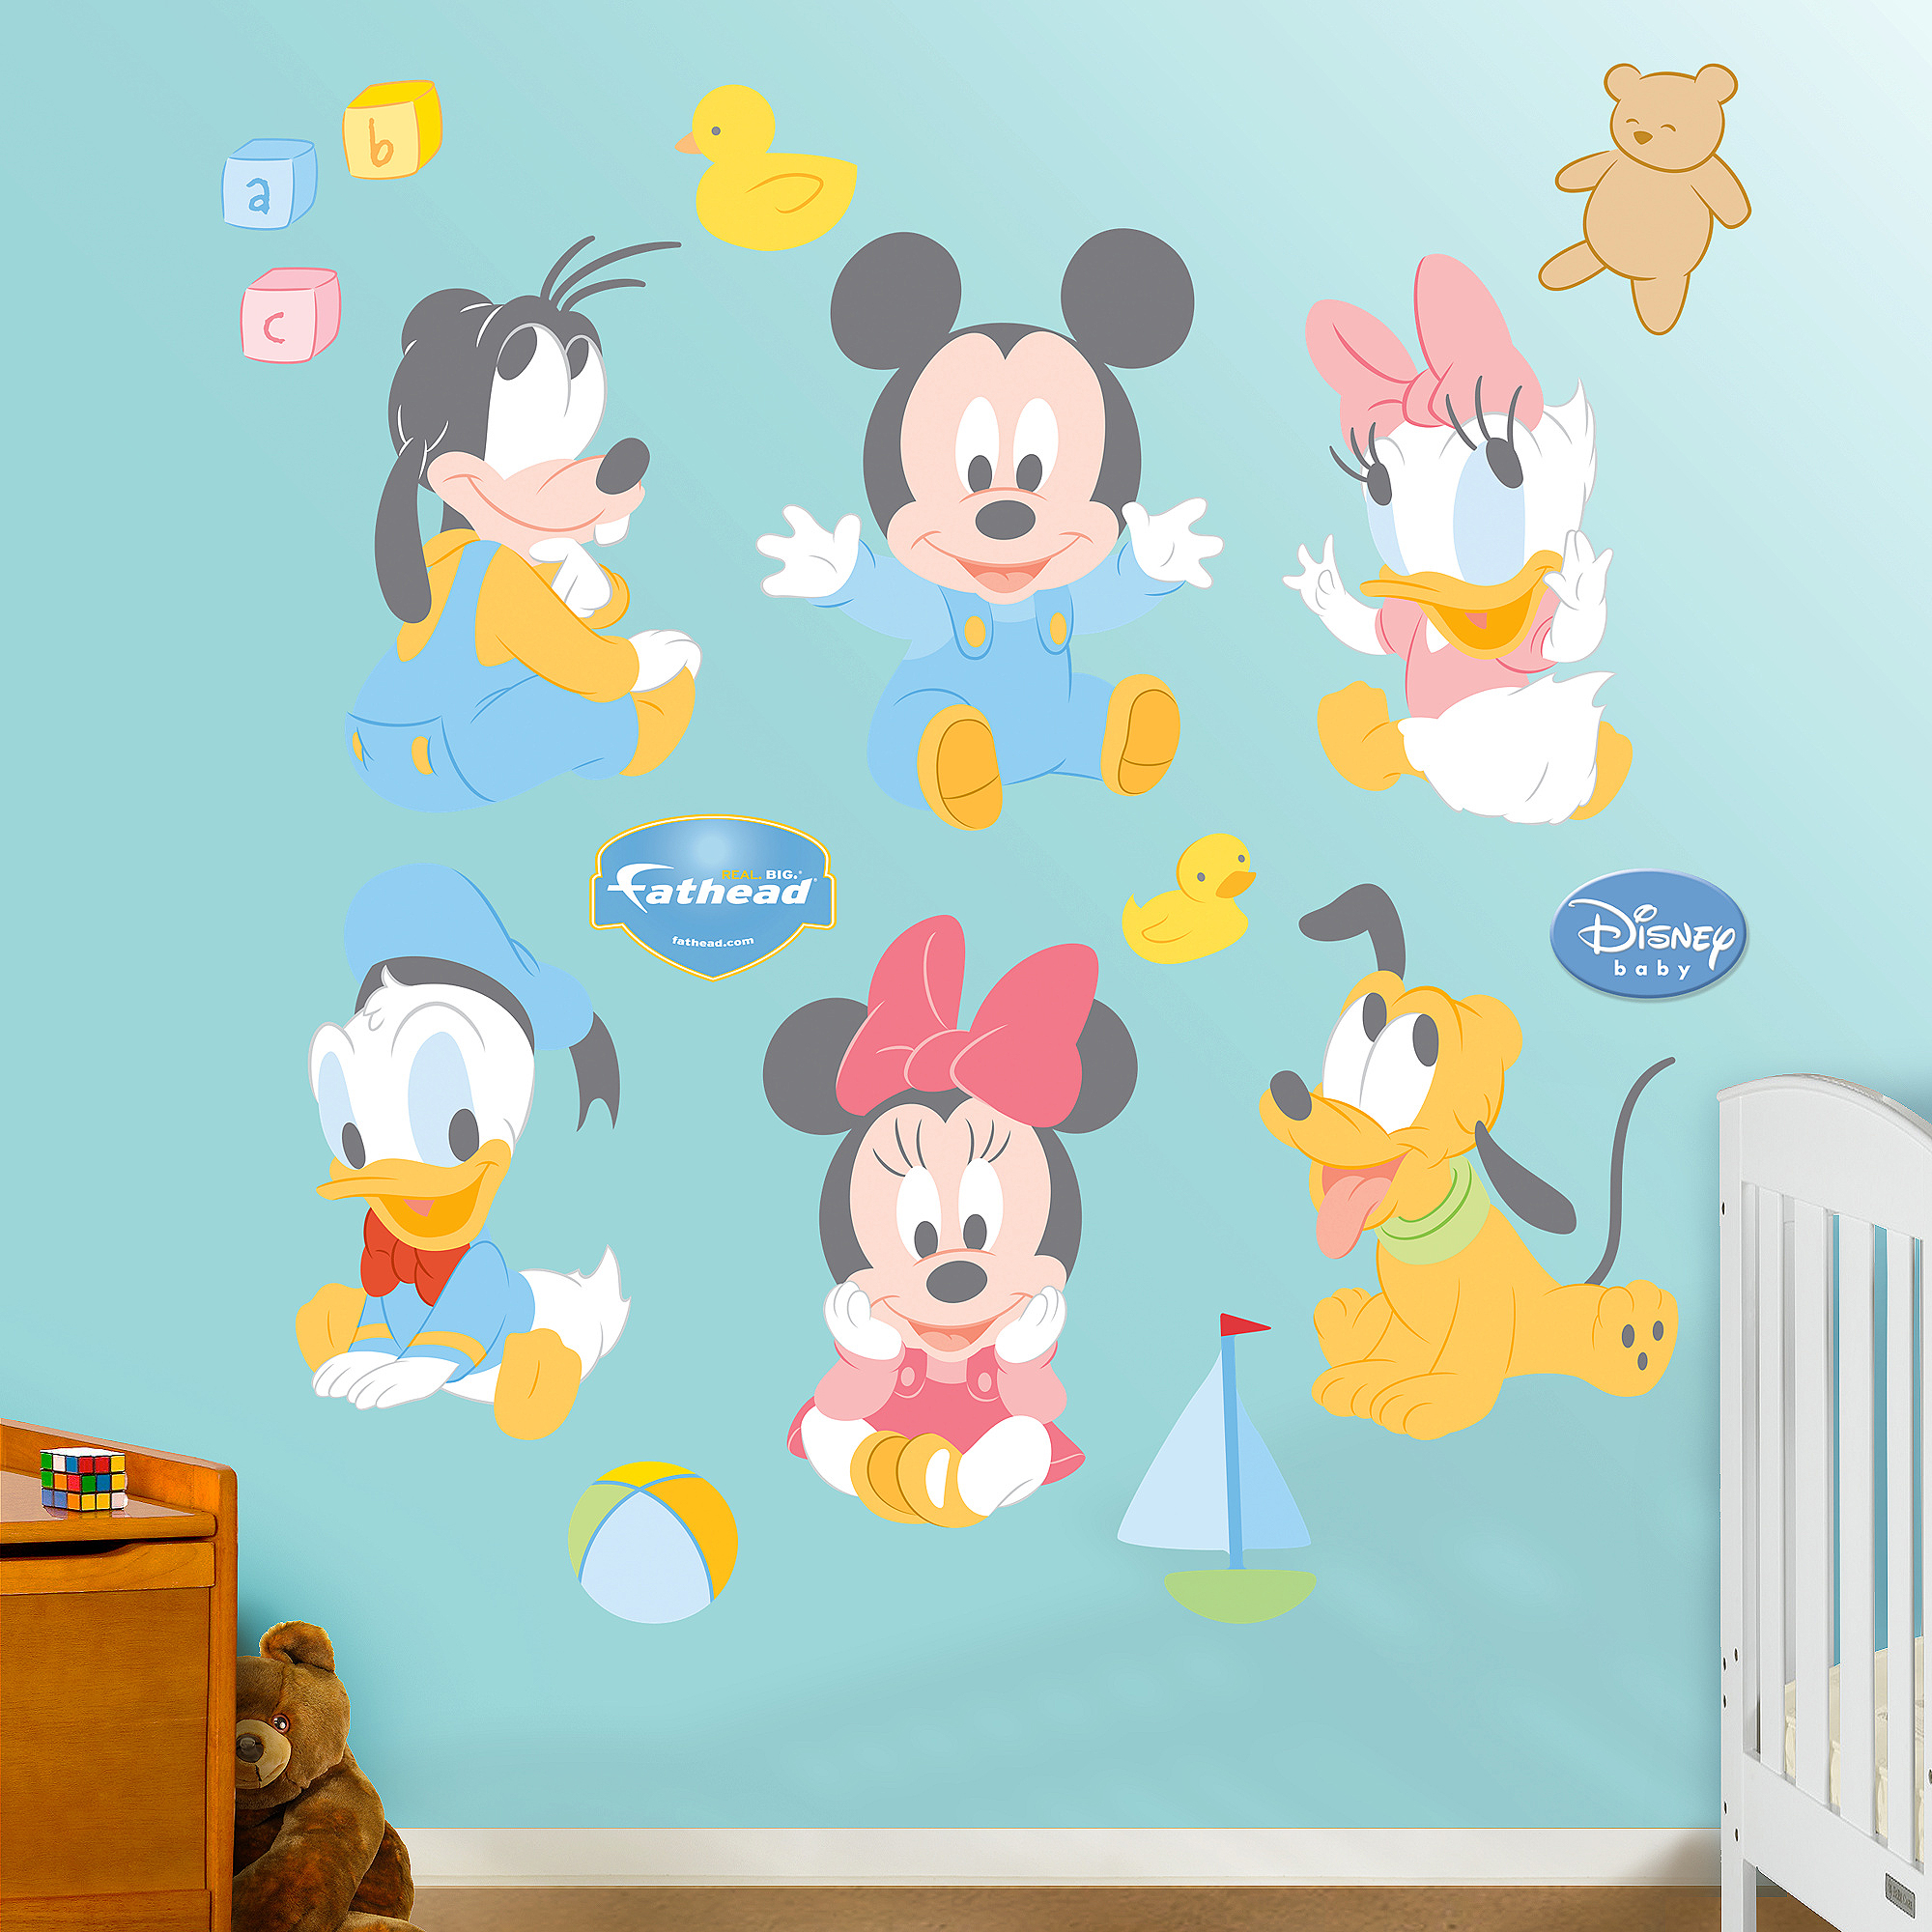 Baby Mickey Mouse Fathead